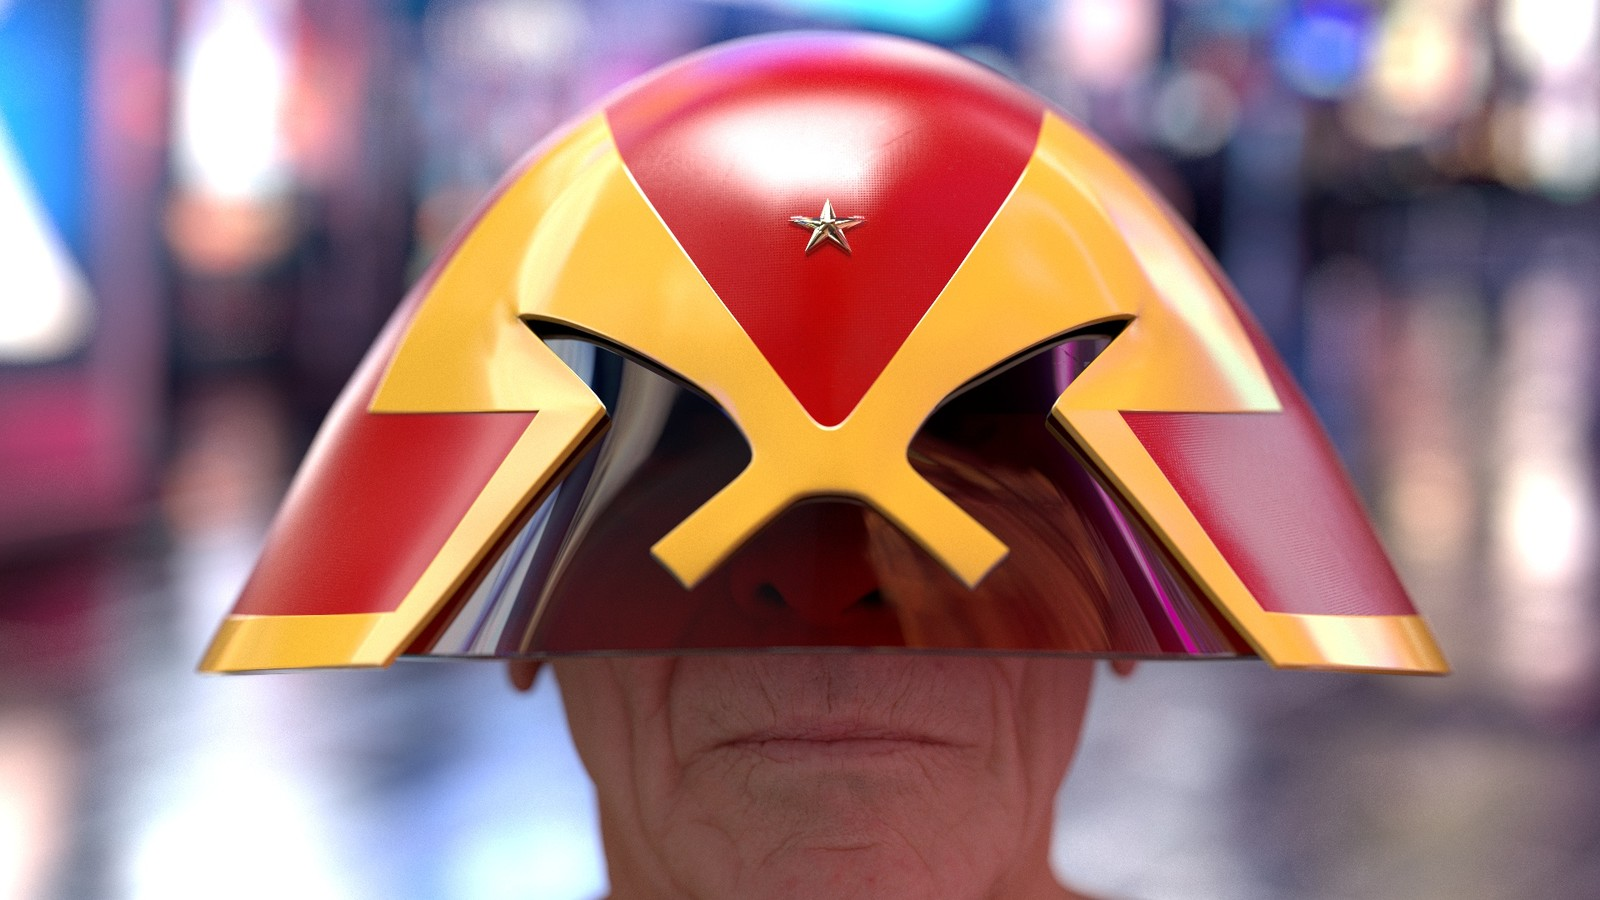 Sino-Cit Judge Helmet